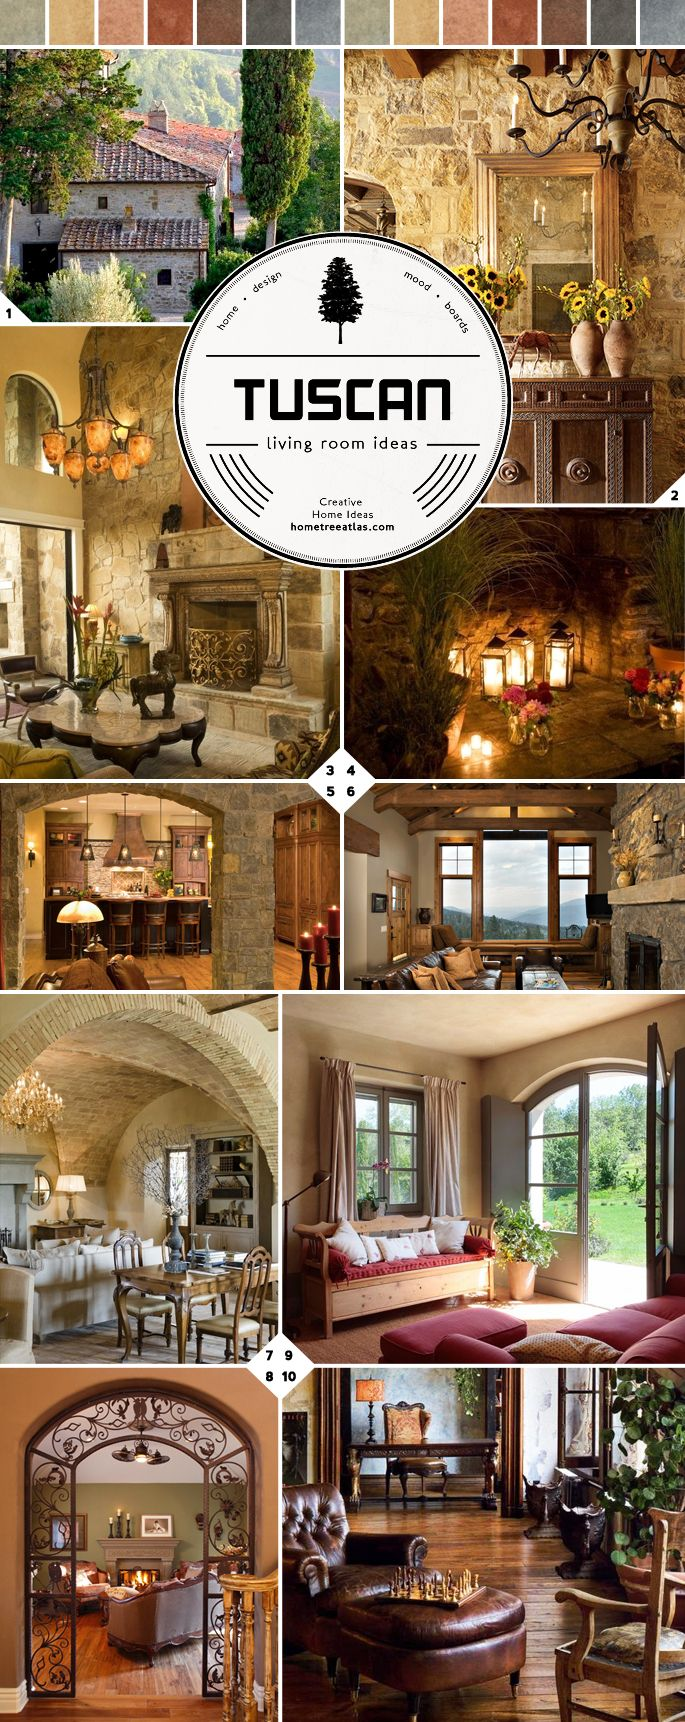 from italy tuscan living room ideas living room ideas tuscan rh pinterest com